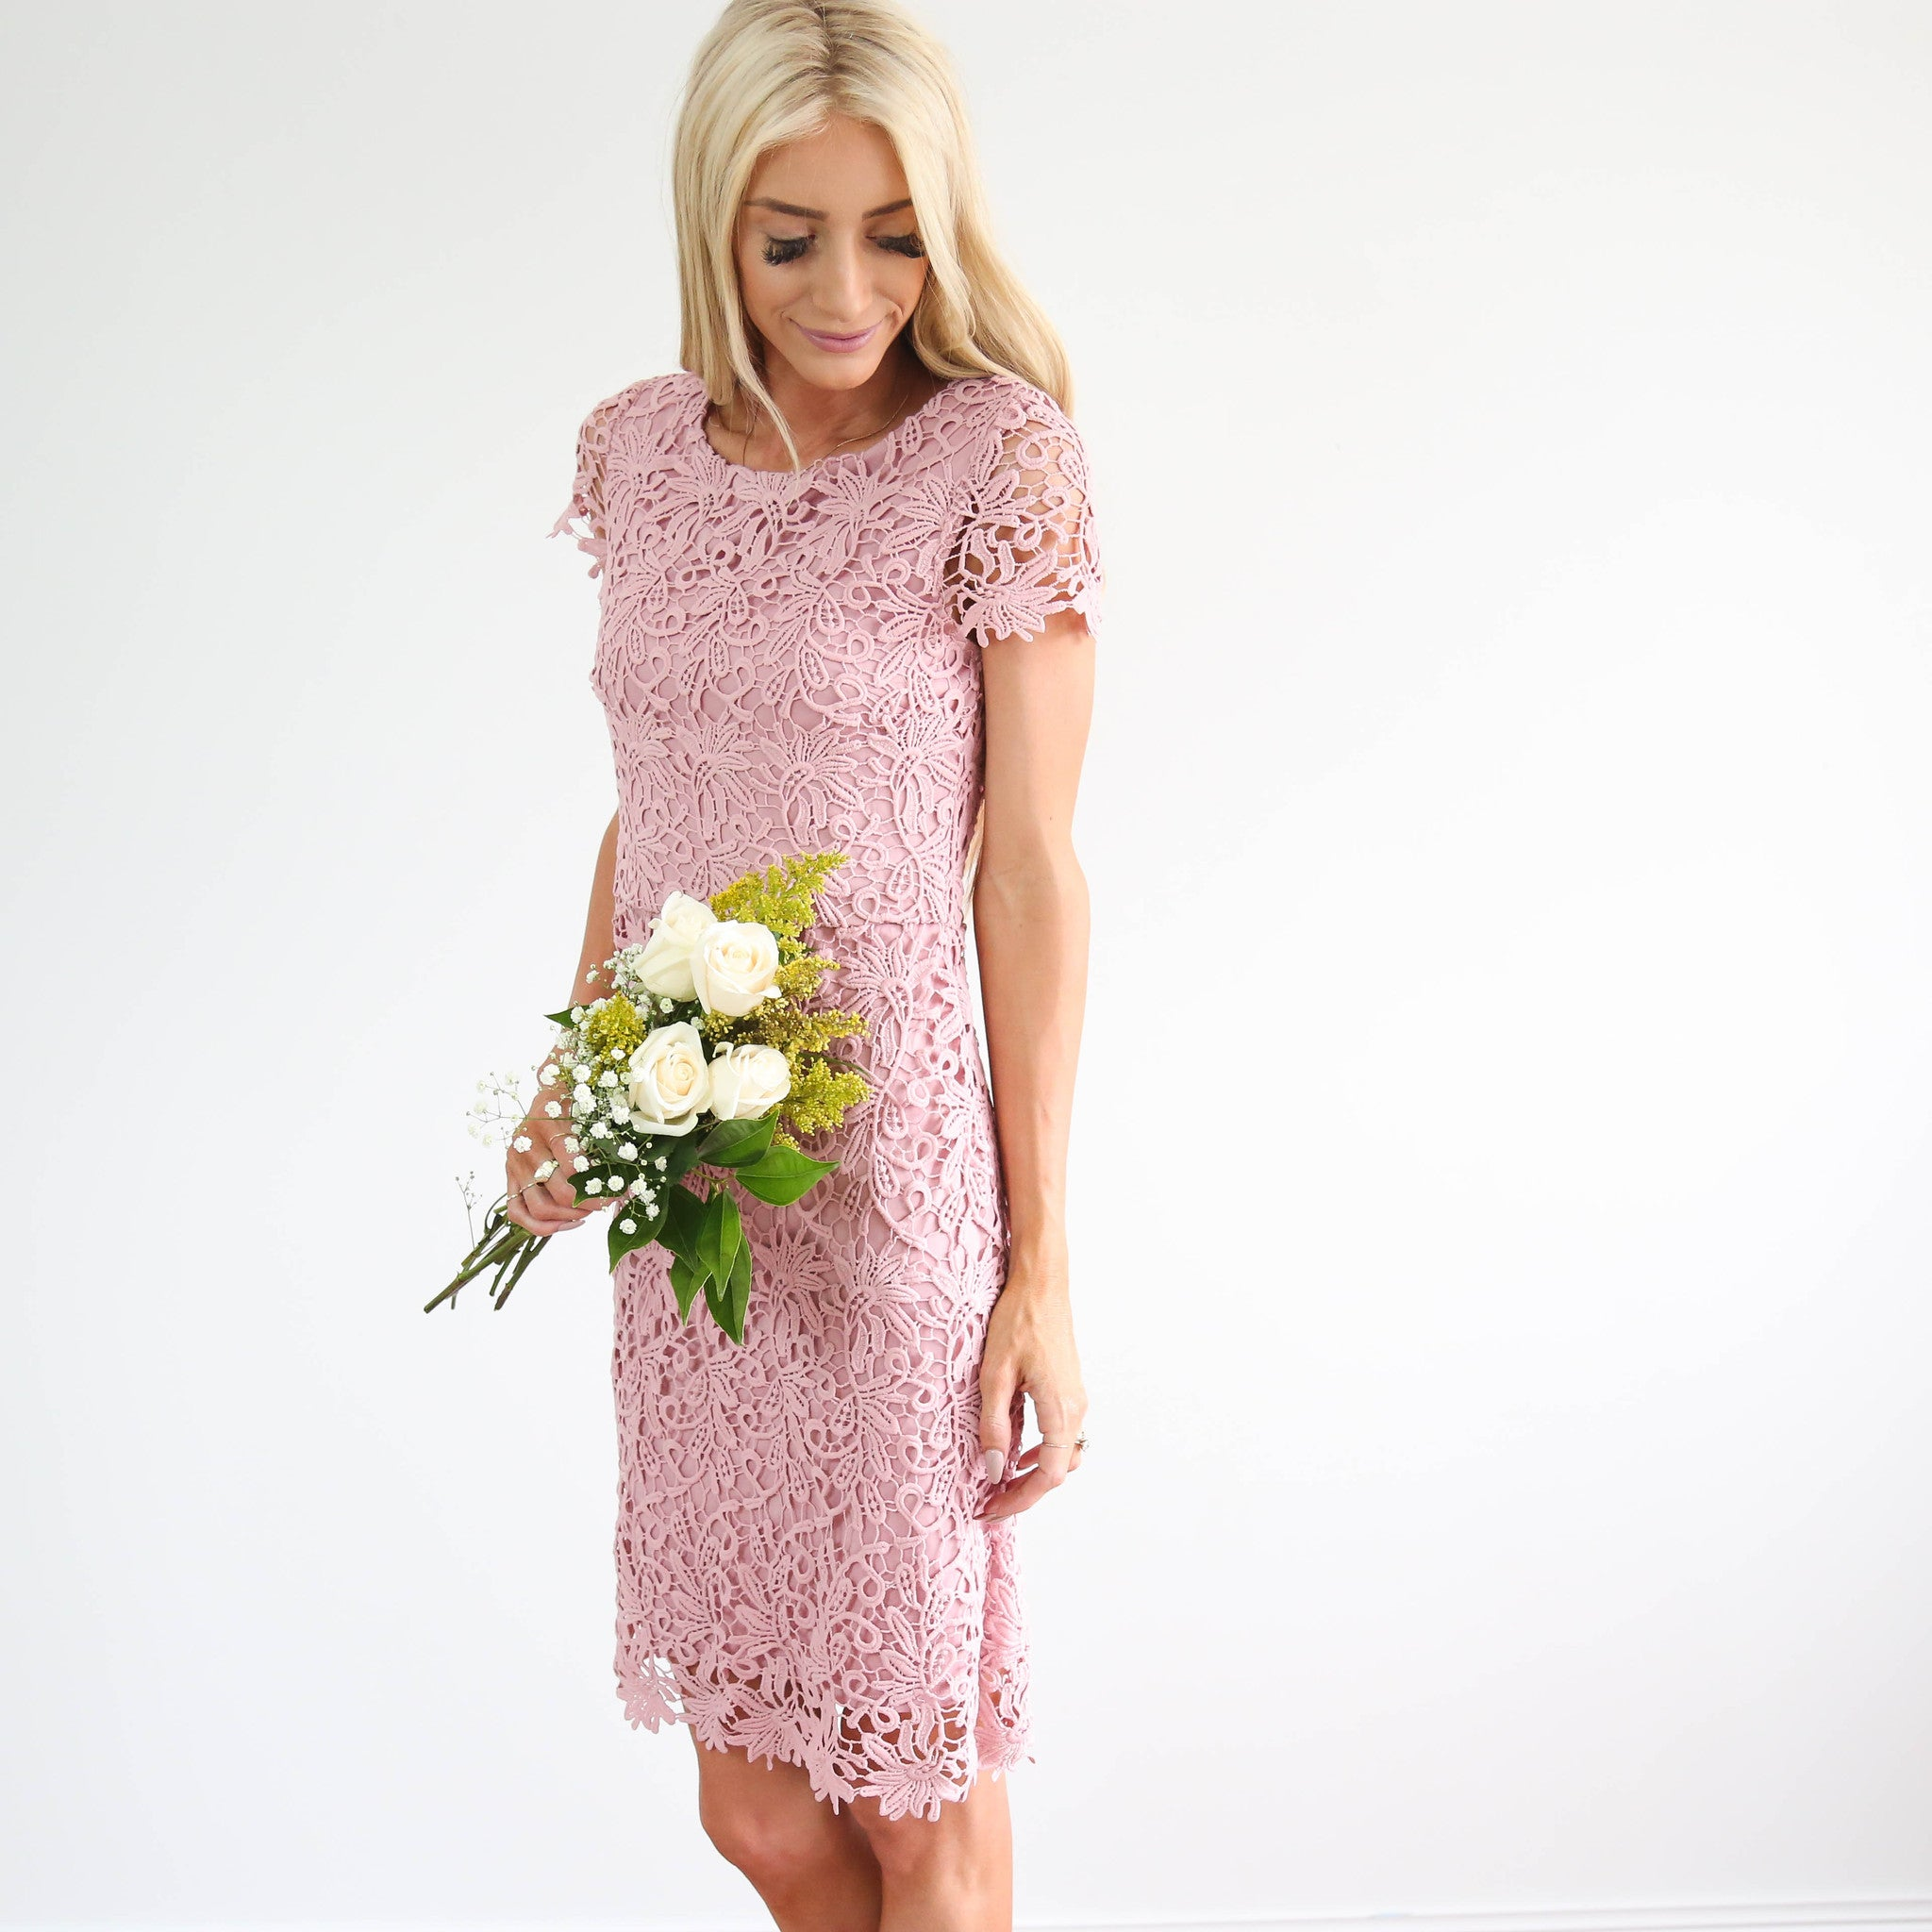 Olea Detailed Lace Dress